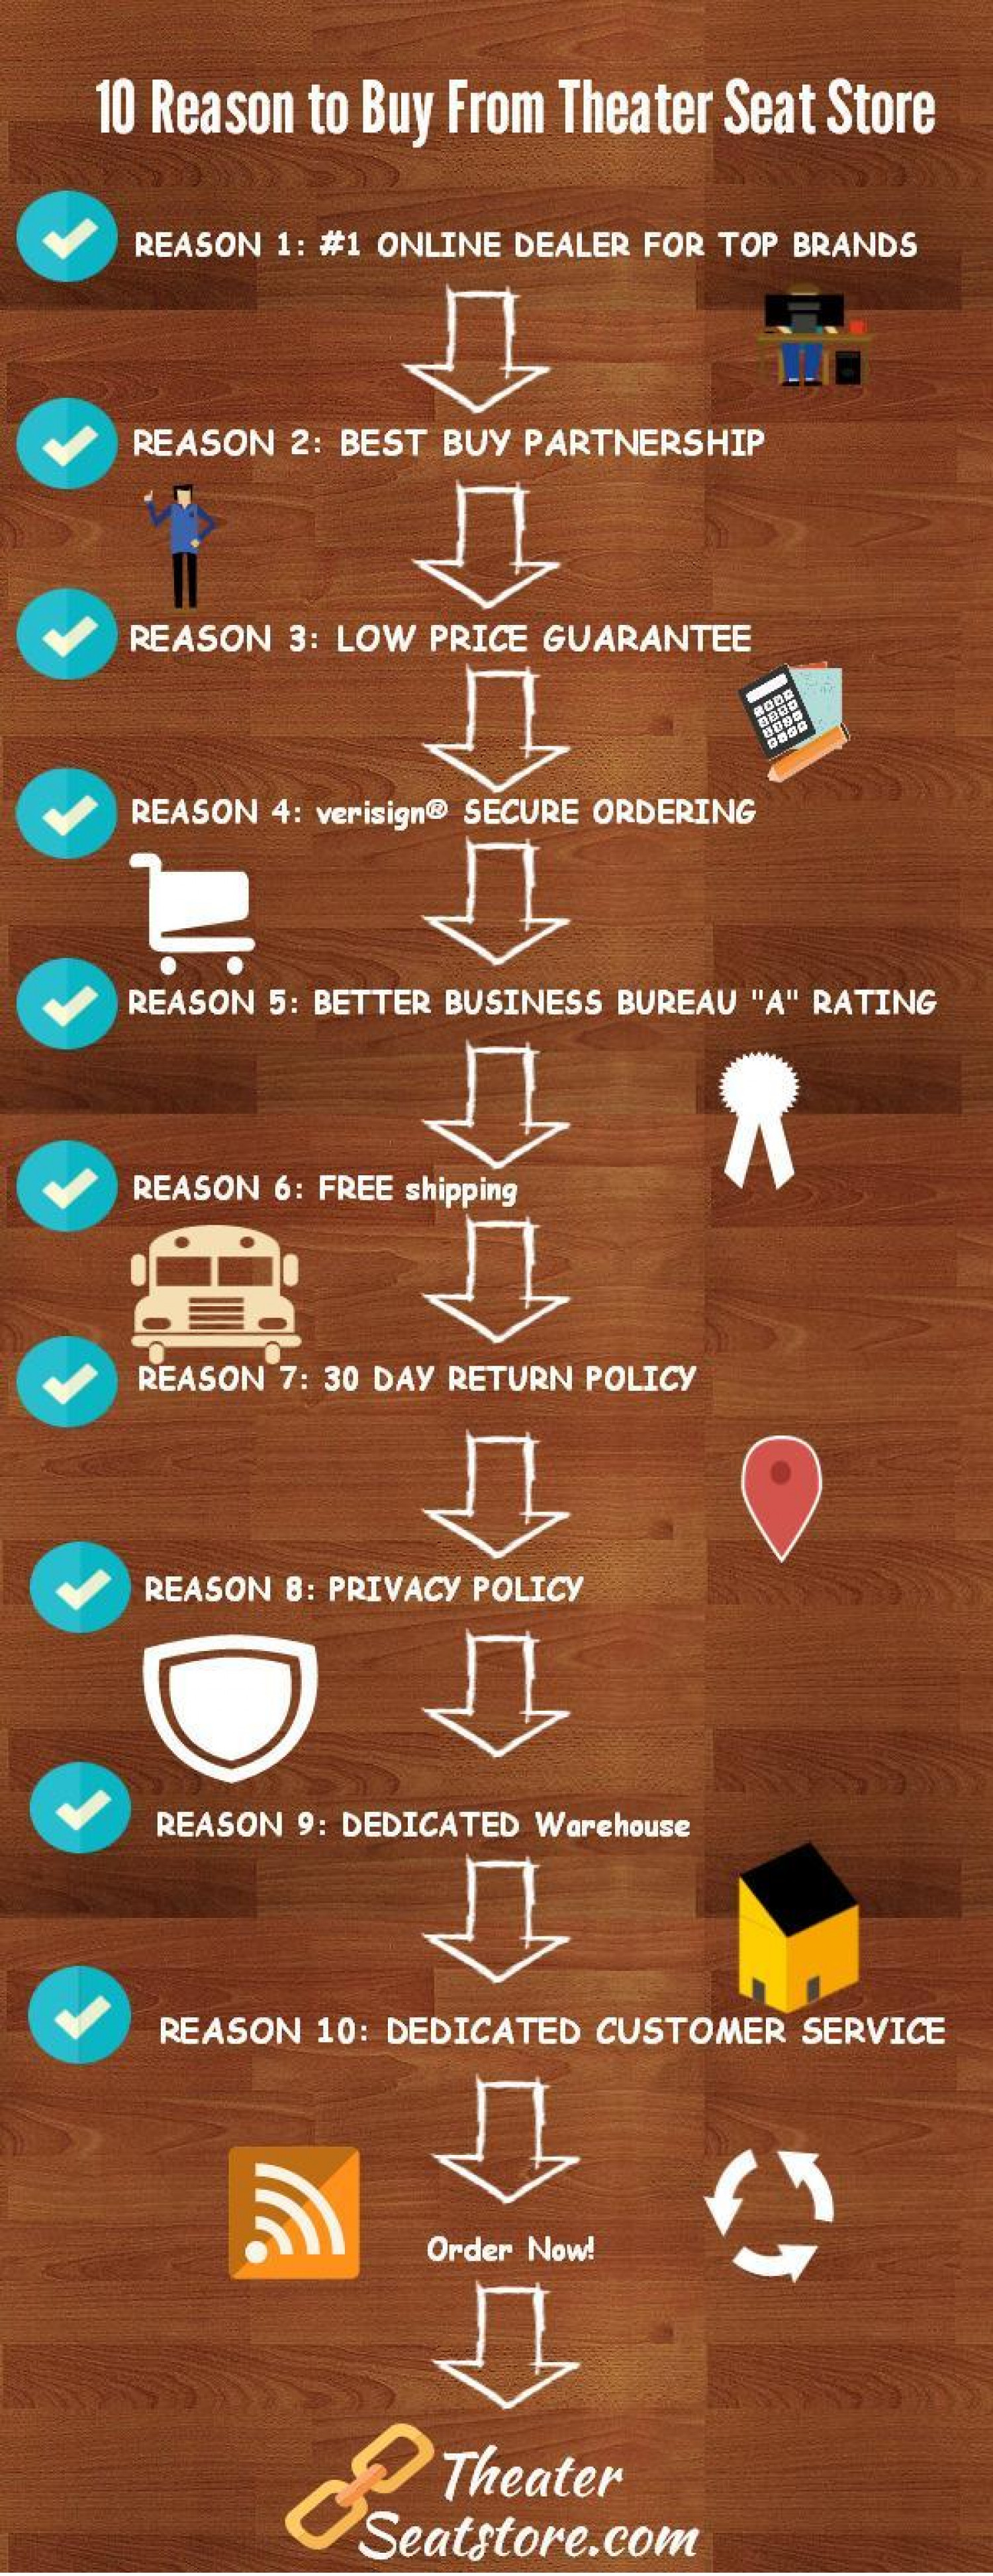 10 Reason to Buy From Theater Seat Store Infographic